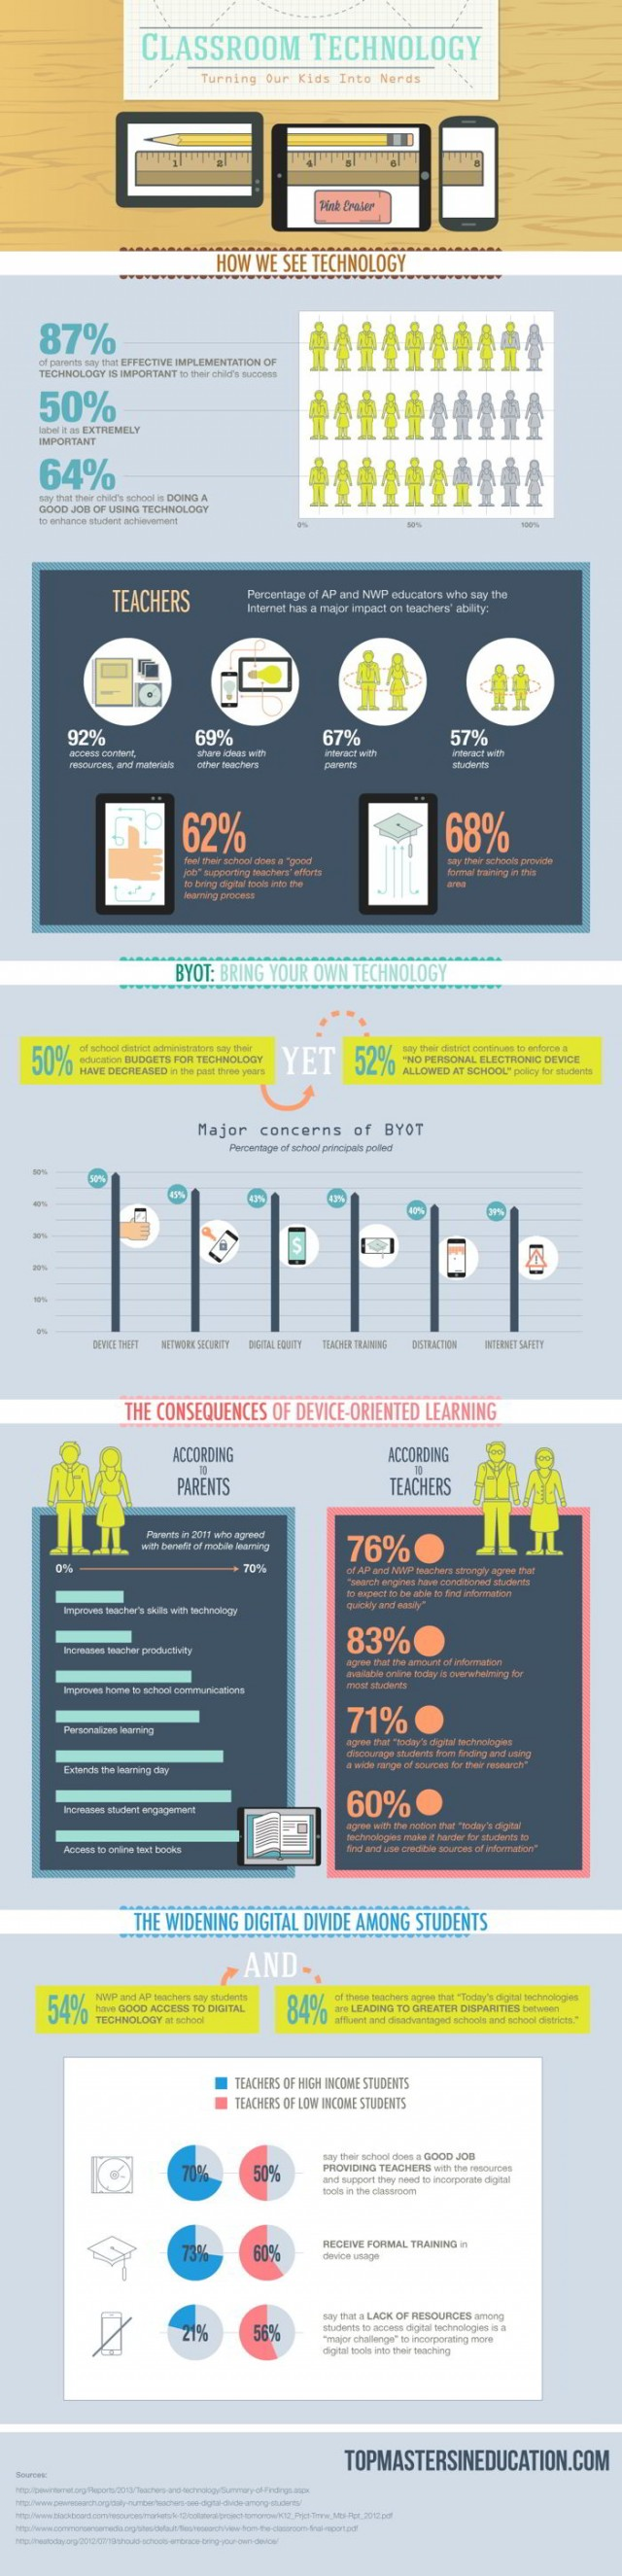 Classroom Technology- Turning our Kids into nerds- infographic